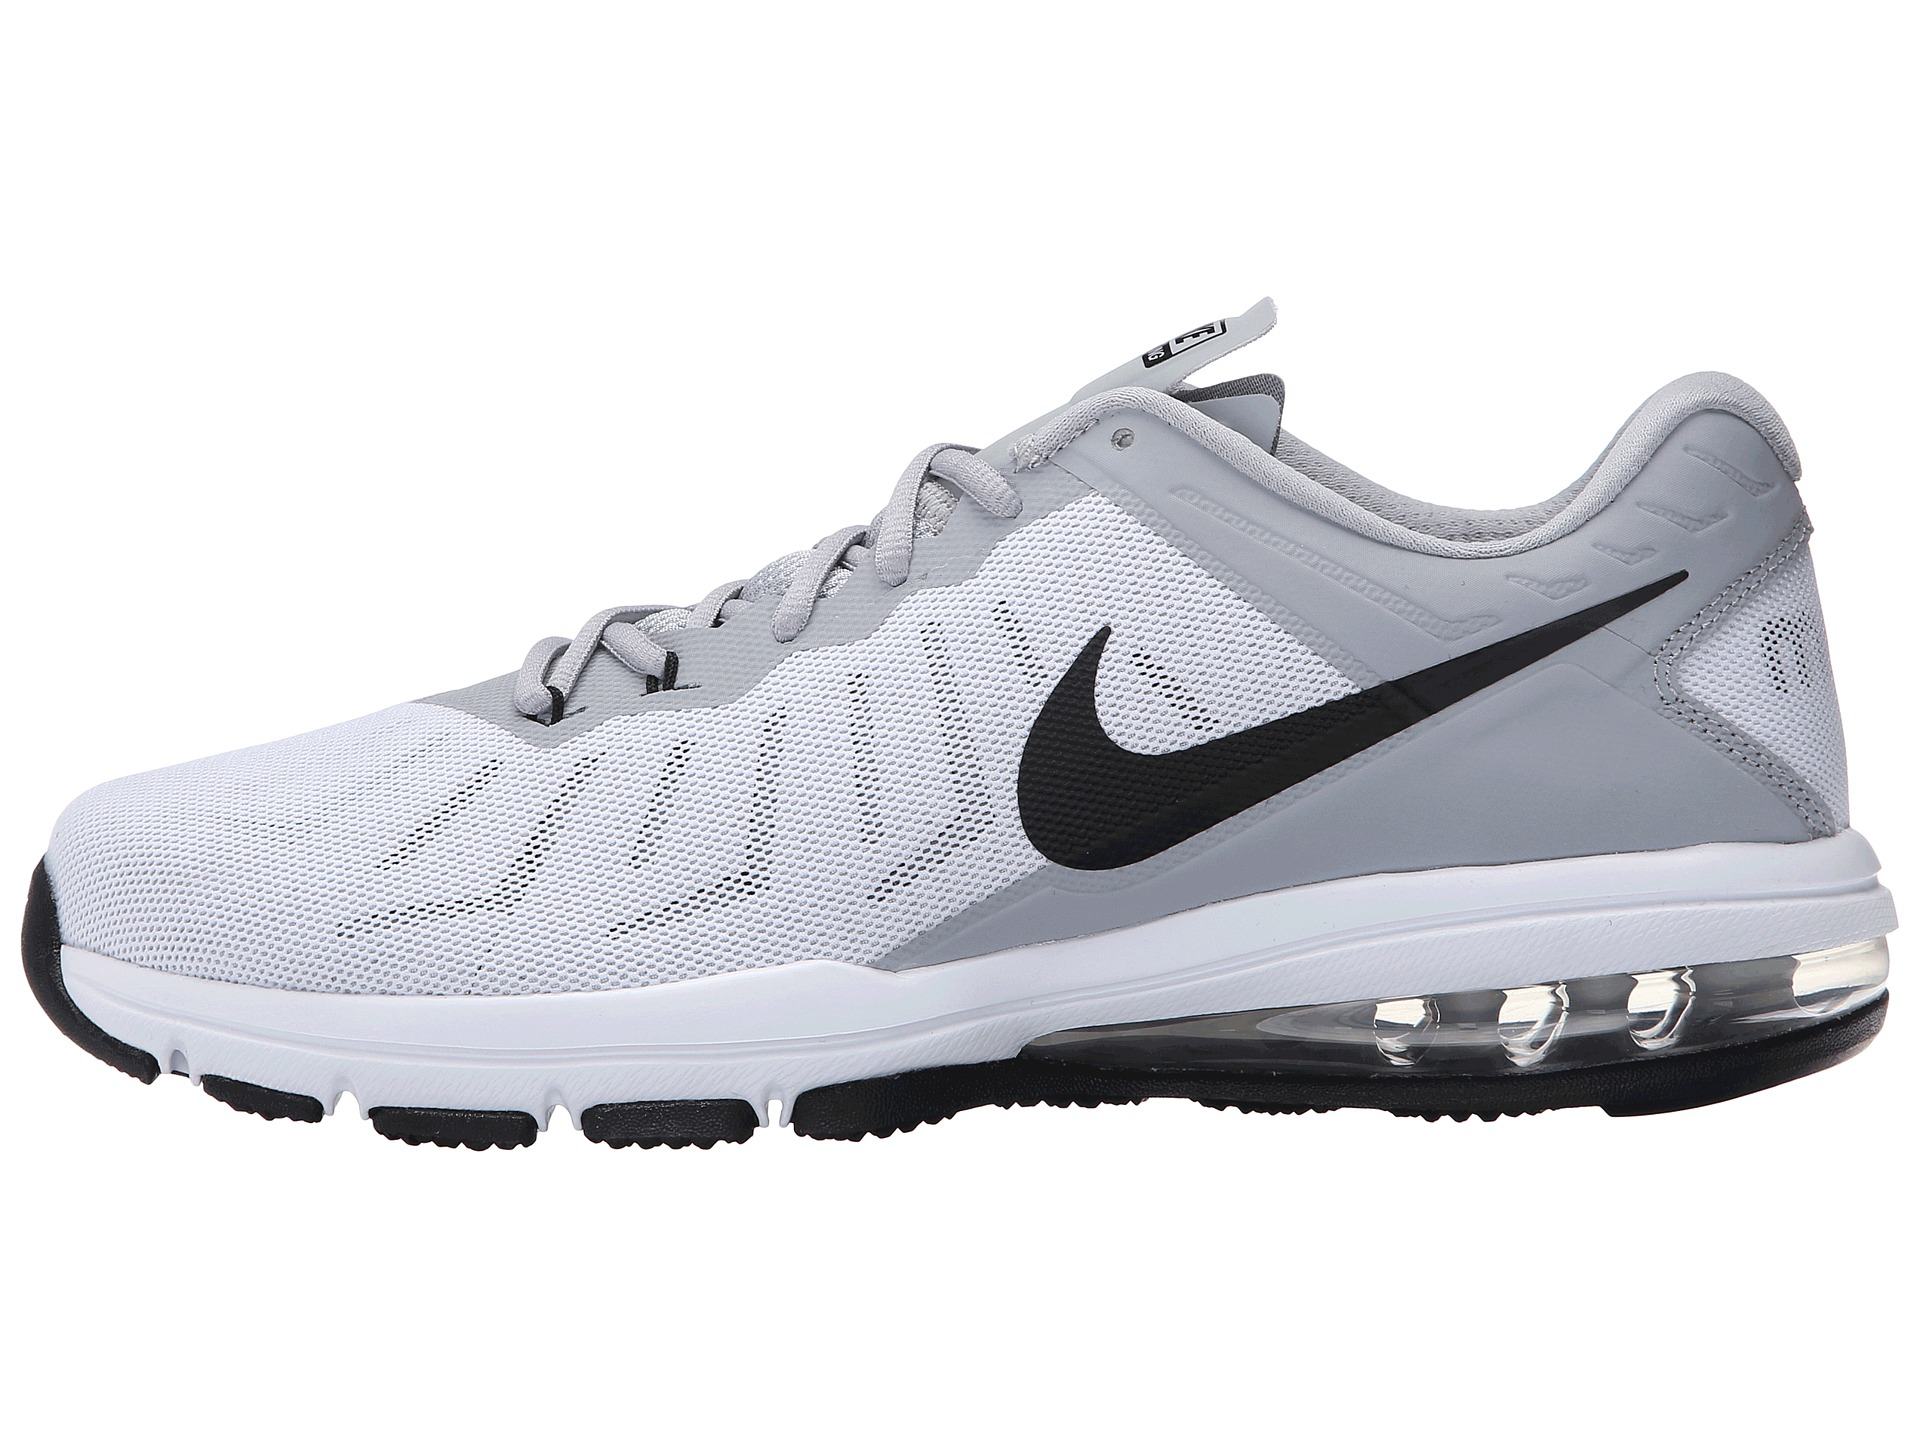 191290b7ca ... Training Shoe Black Anthracite Dark Grey Lyst - Nike Air Max Full Ride  Tr in White for Men ...